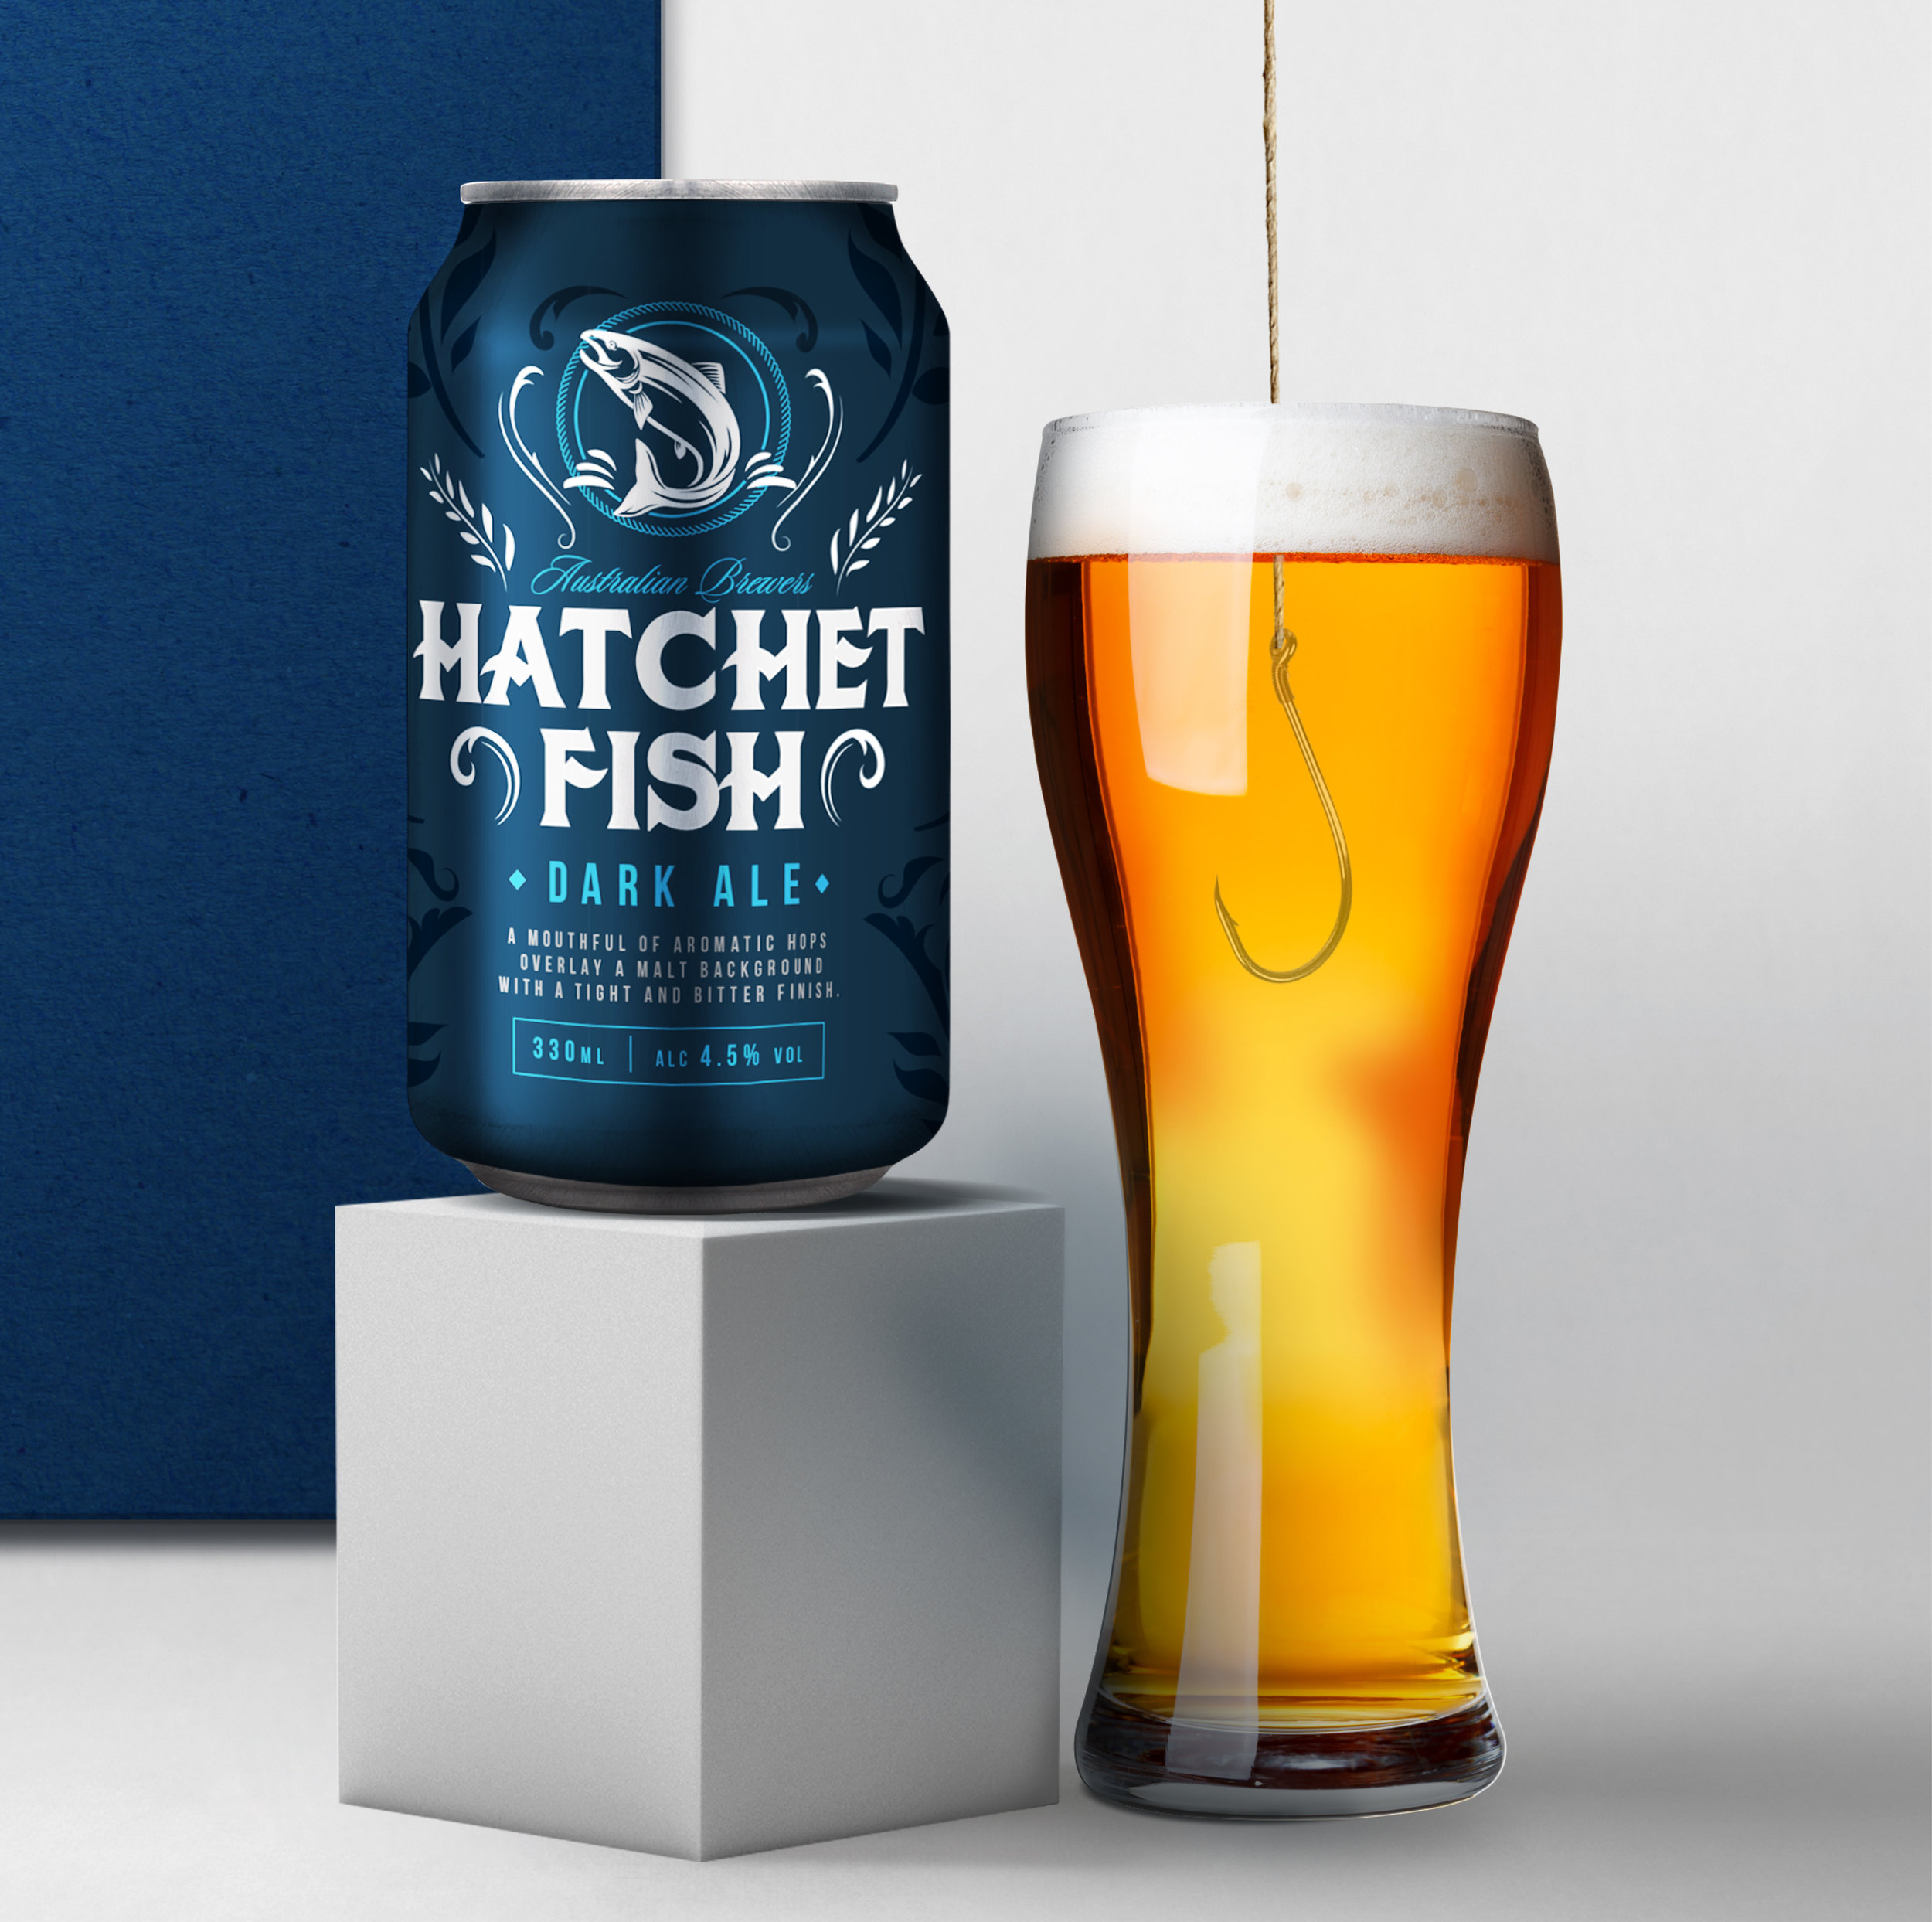 Hatchet Fish Our Revolution Brand Design Brand Logo Packaging Design Brand Strategy Brand Innovation Beer Packaging Beer Design Beer Brand Alcohol Branding Alcohol Packaging Alcohol innovation Packaging Innovation